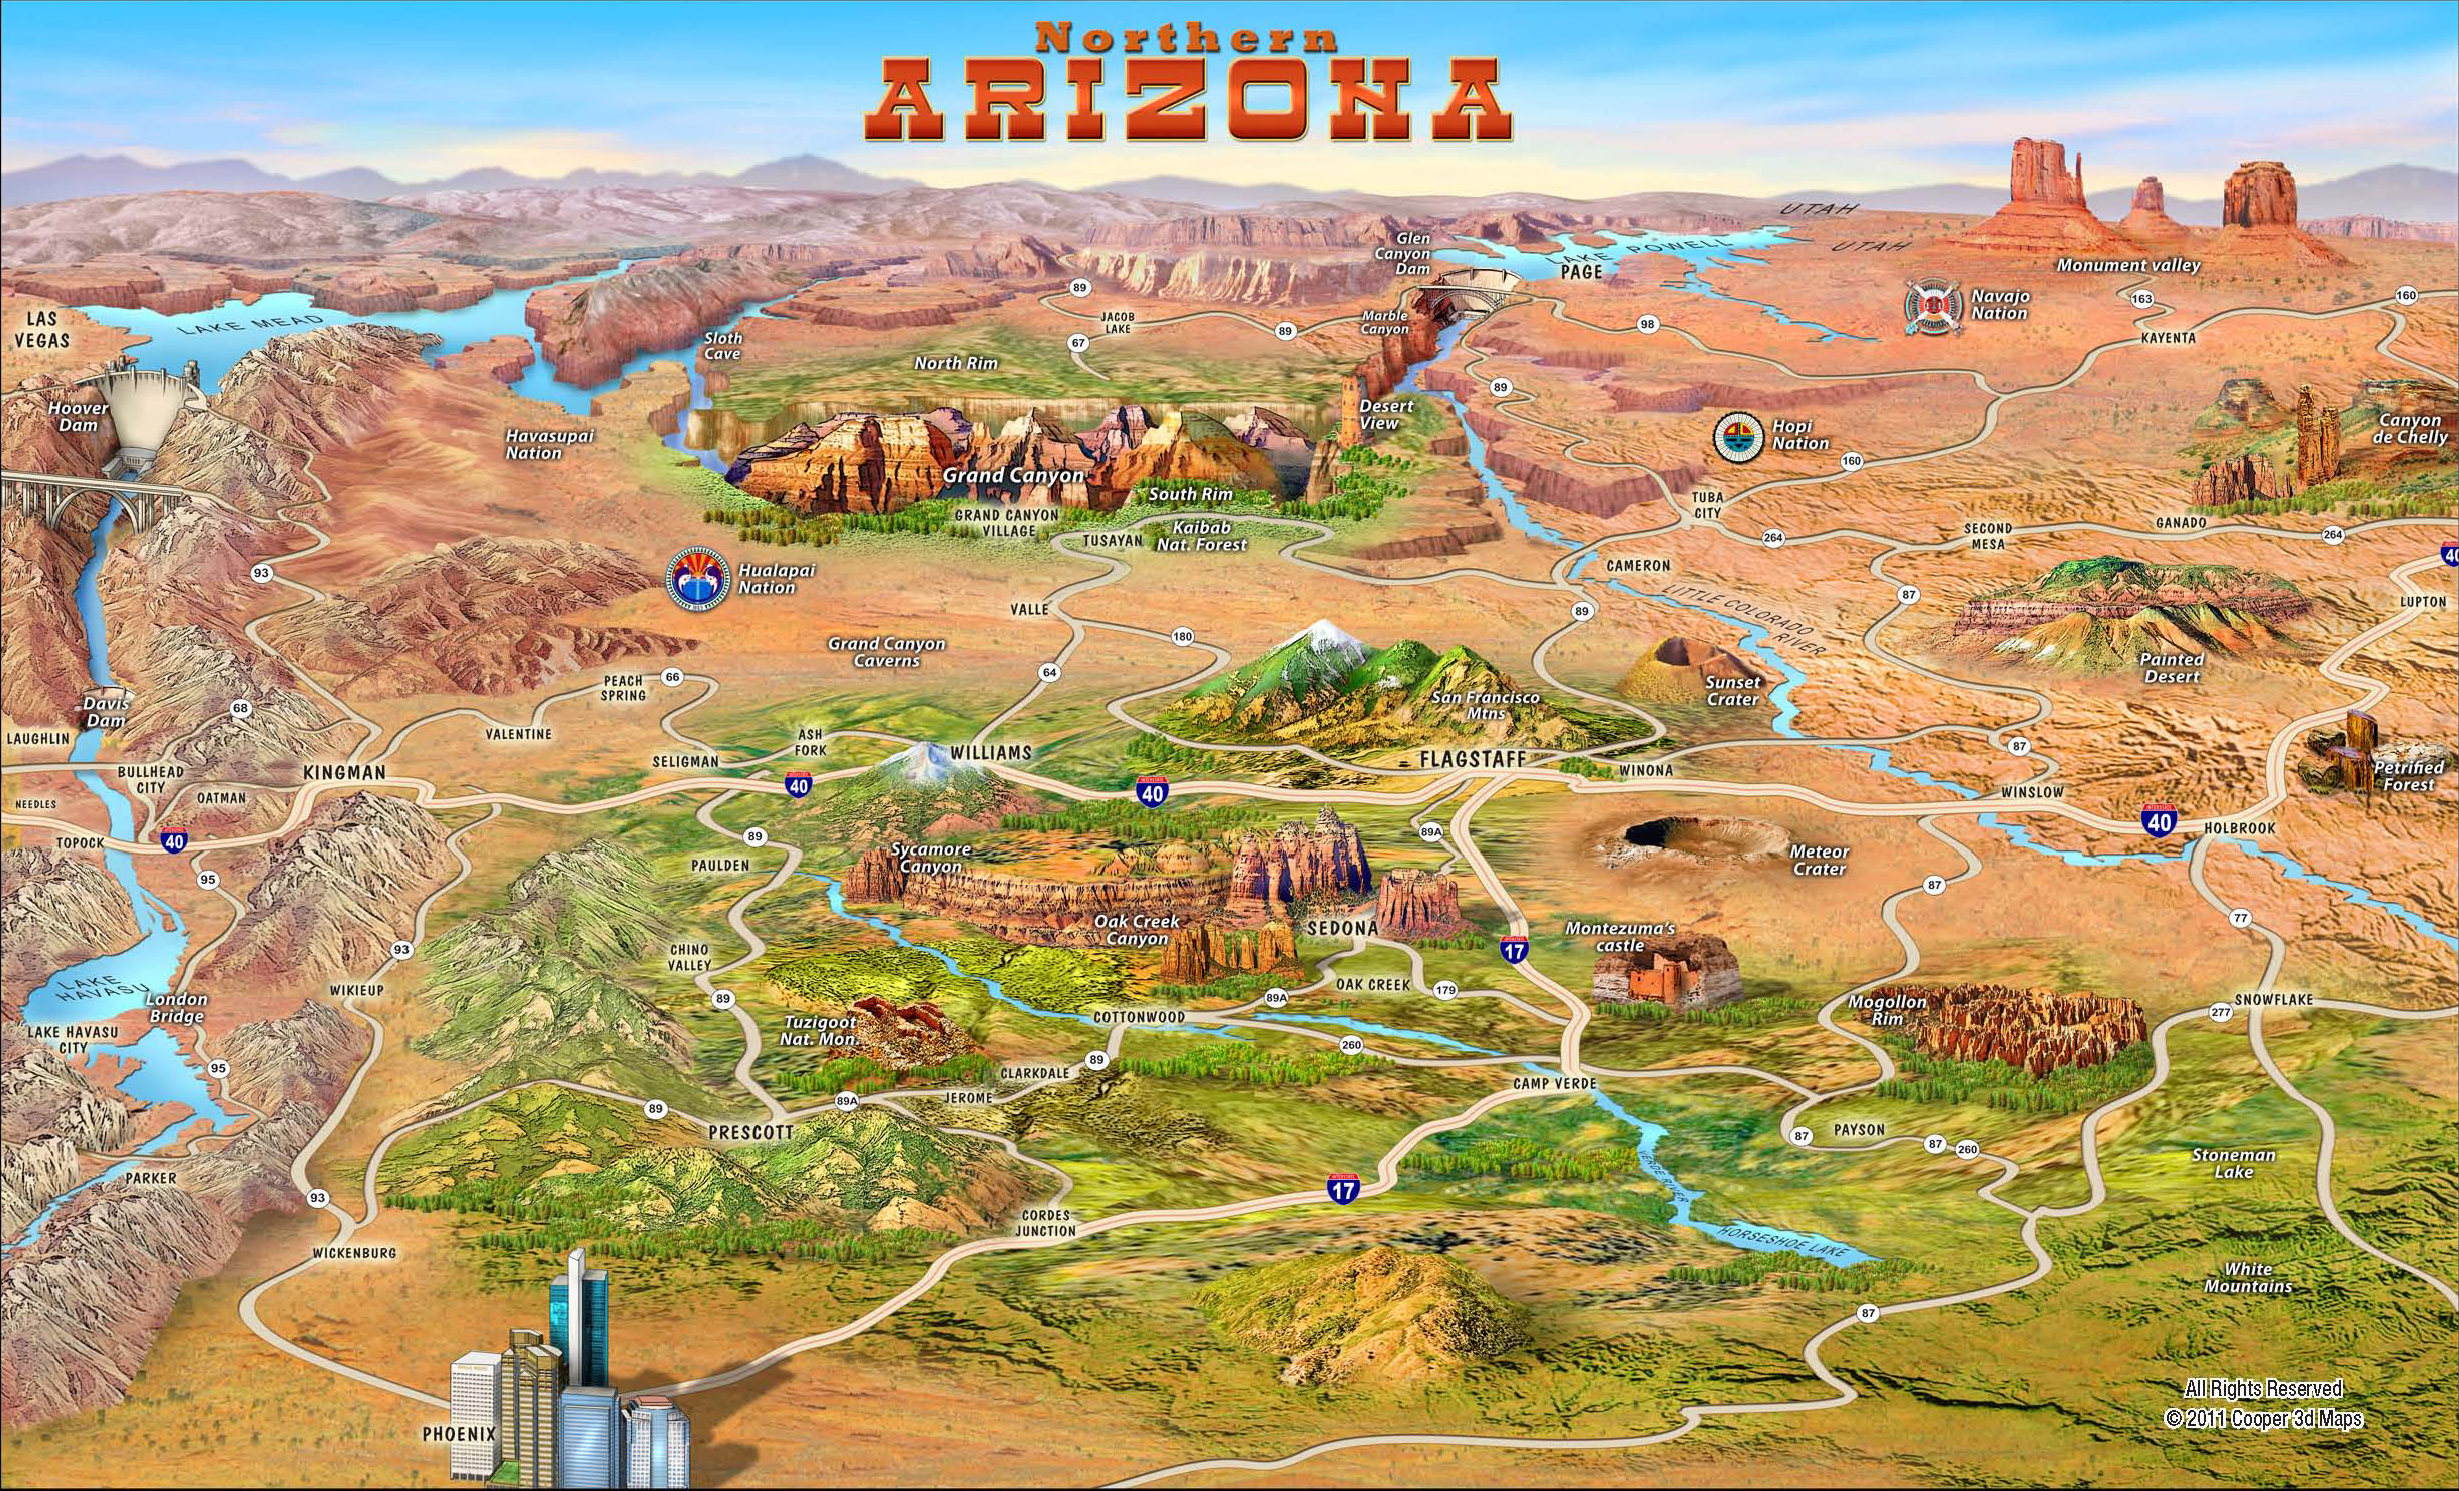 Southwest Tours Grand Canyon Page Las Vegas Phoenix Flagstaff – Arizona Travel Map